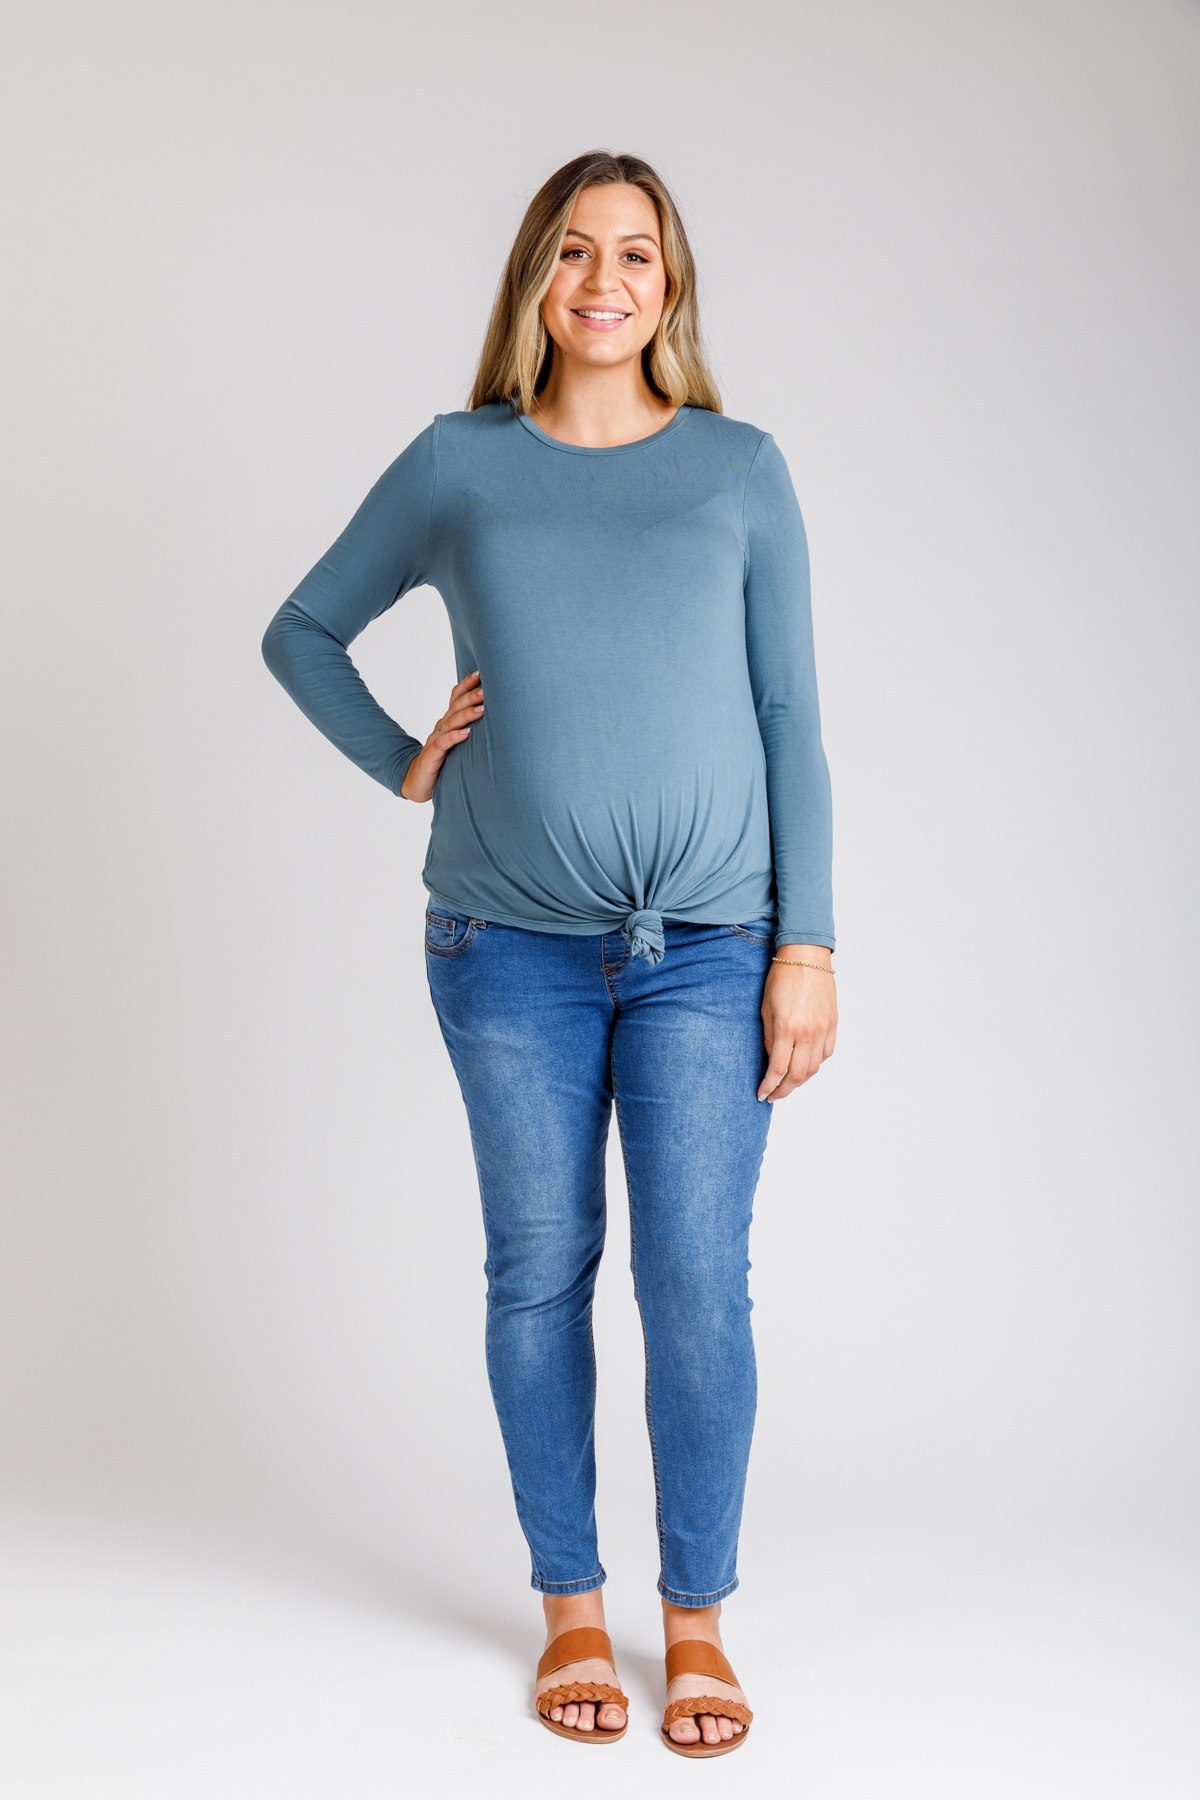 Floreat long tee knotted under baby bump